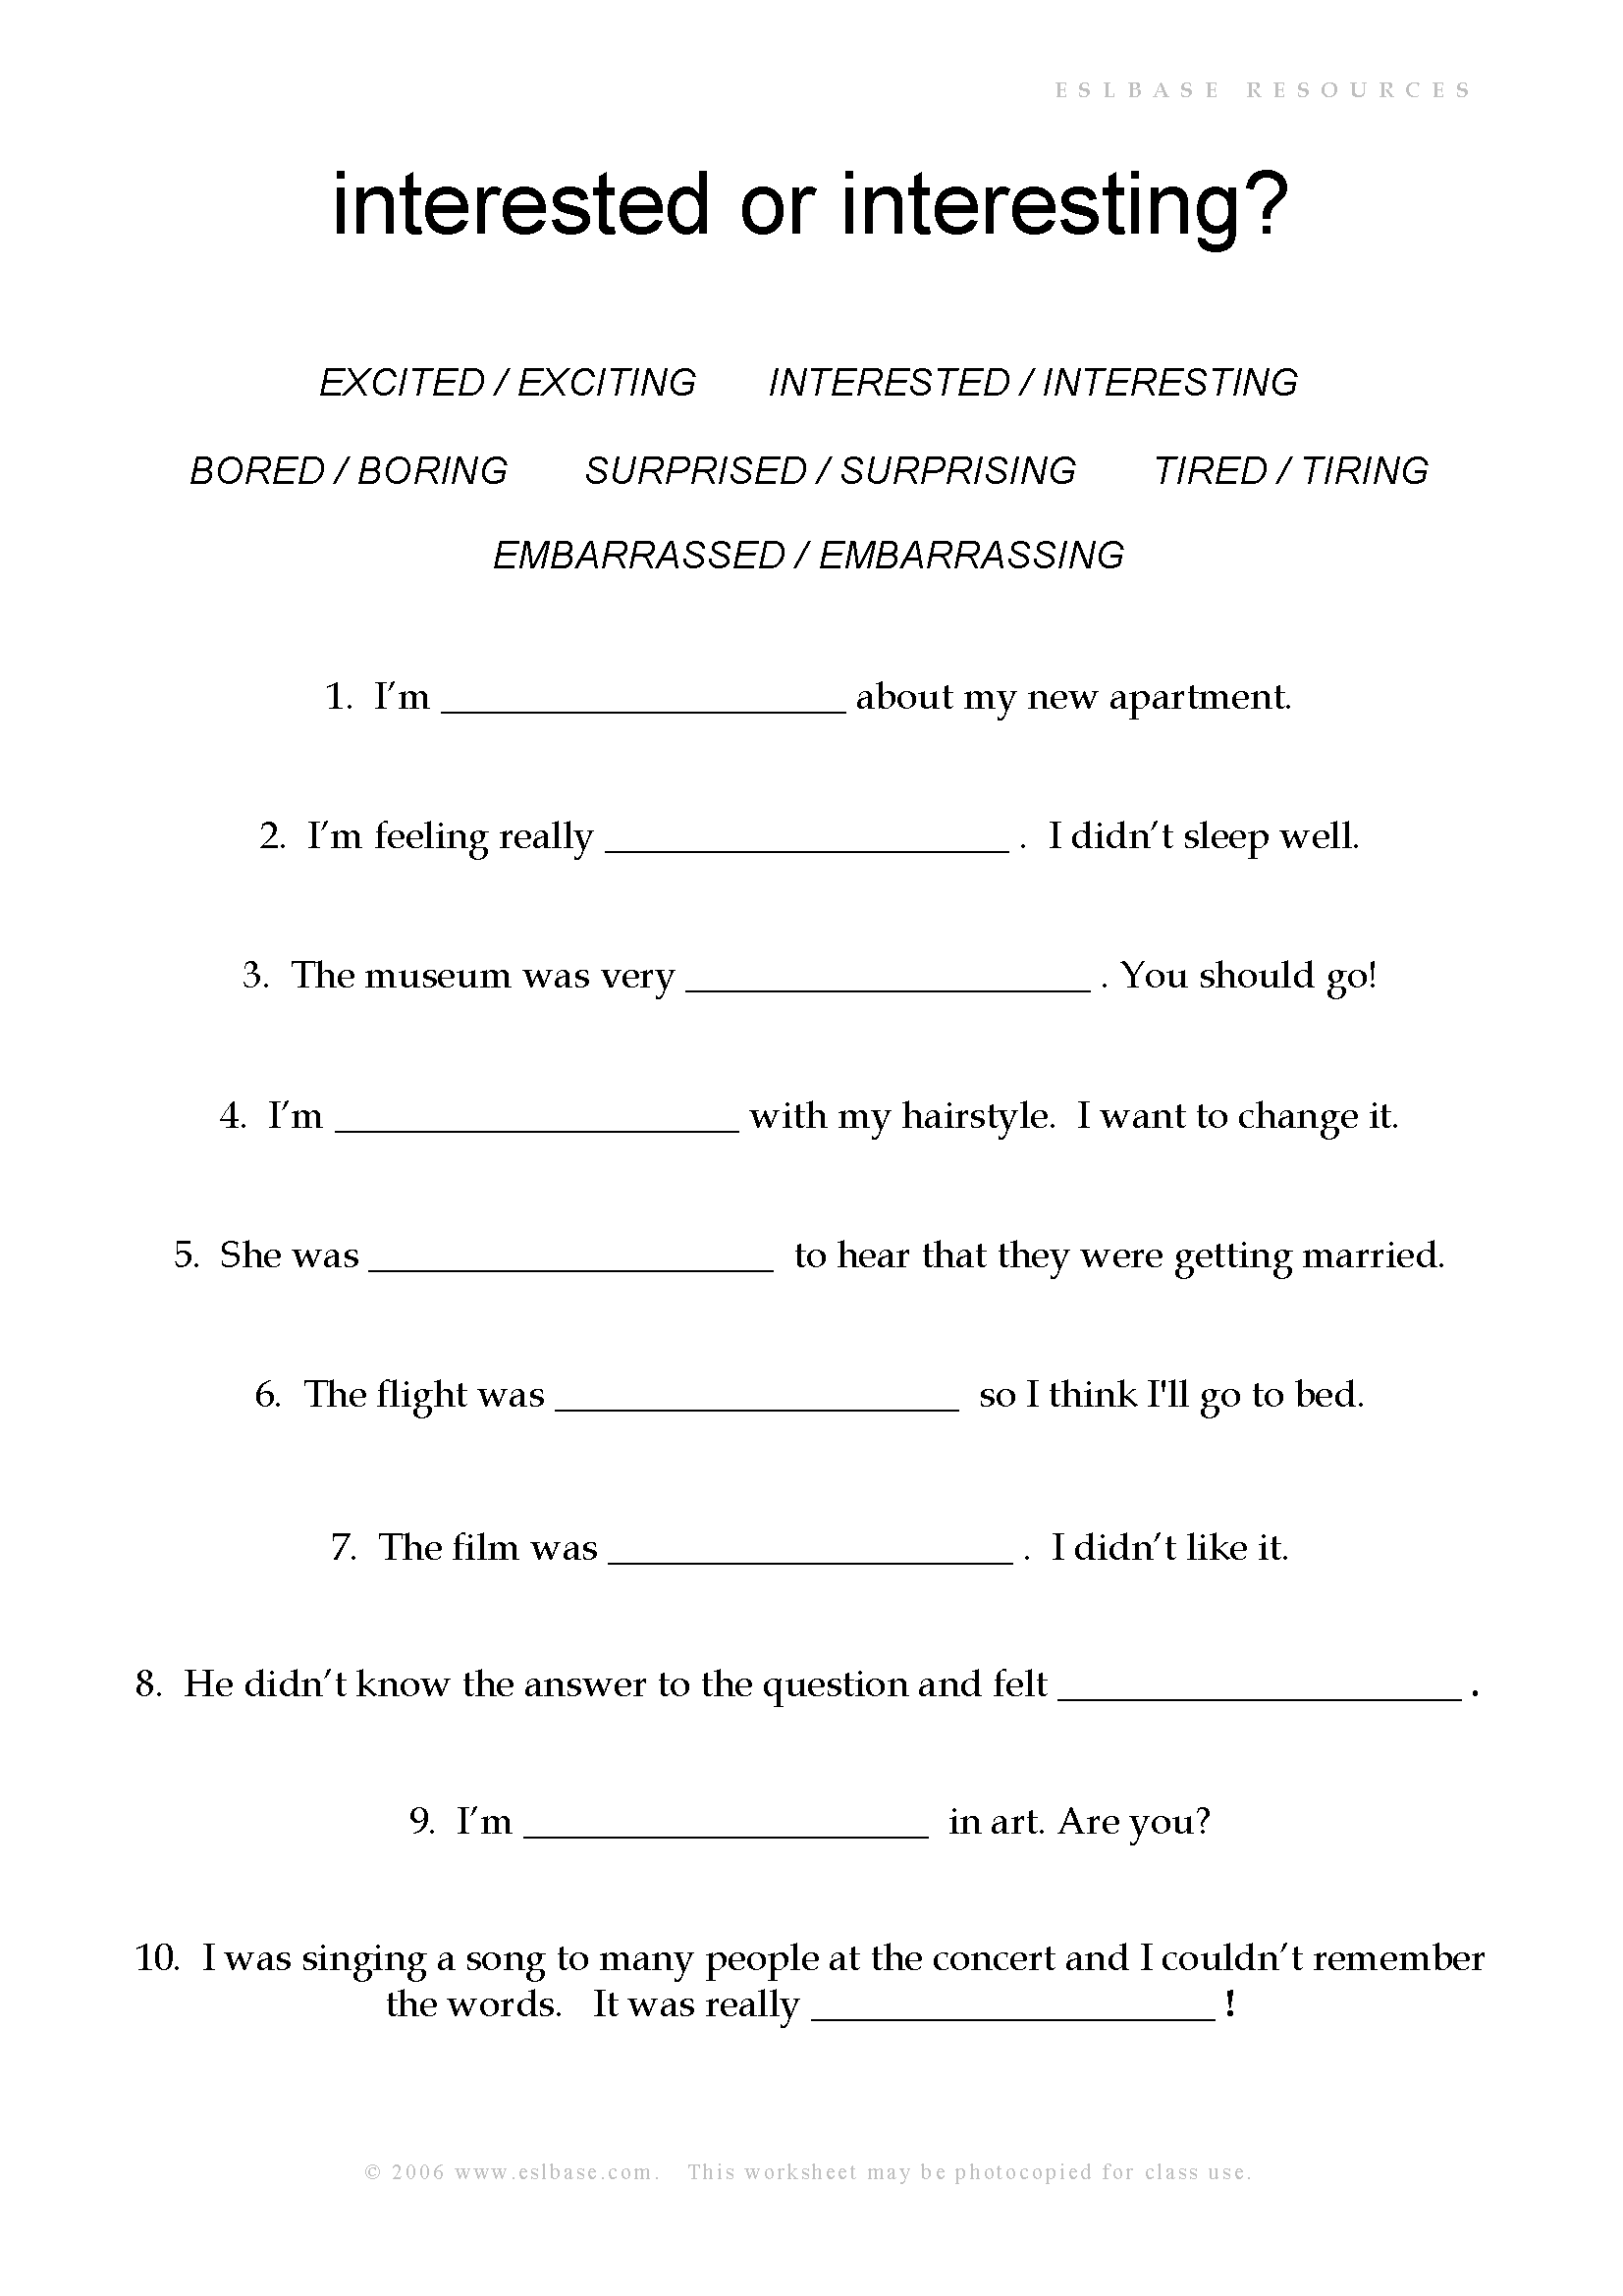 worksheet Esol Worksheets esl worksheets adjectives with ed or ing eslbase com ing